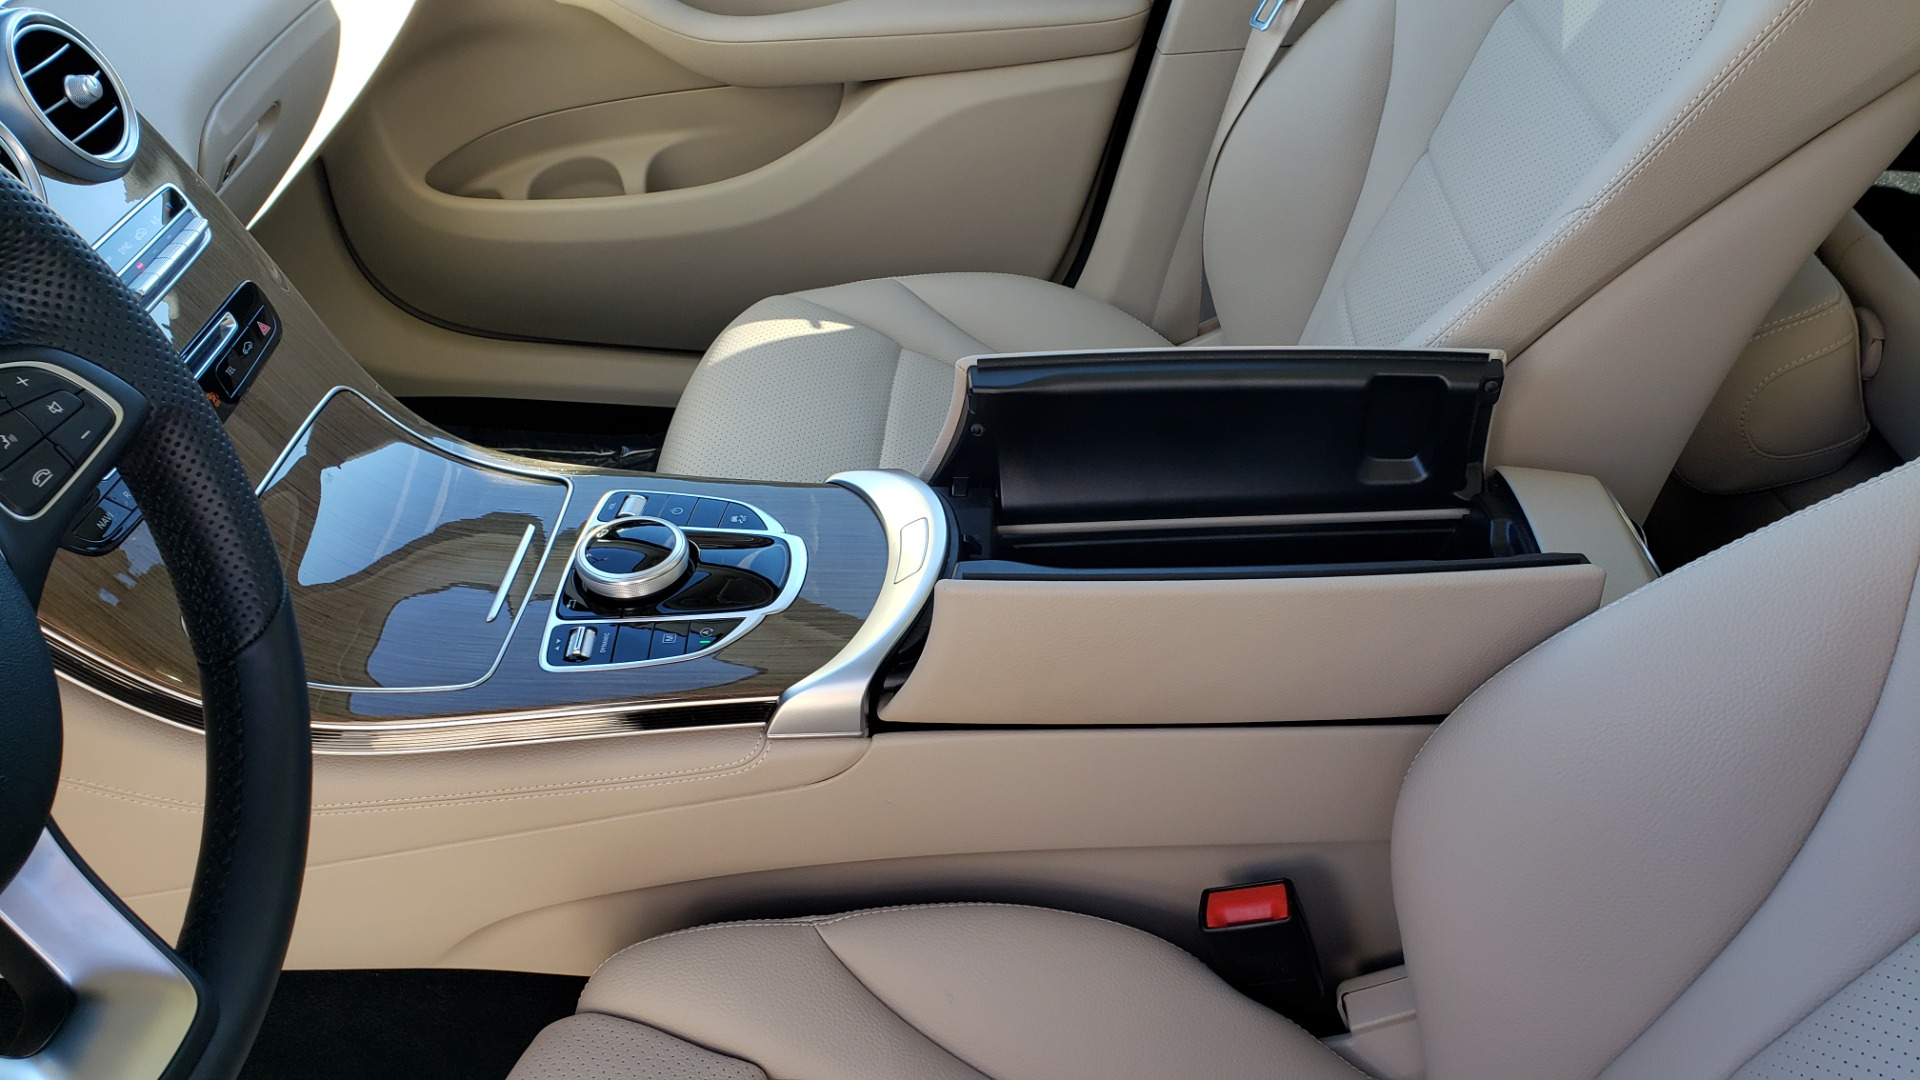 Used 2018 Mercedes-Benz GLC 300 4MATIC / PREM PKG / NAV / SUNROOF / REARVIEW for sale $36,995 at Formula Imports in Charlotte NC 28227 61